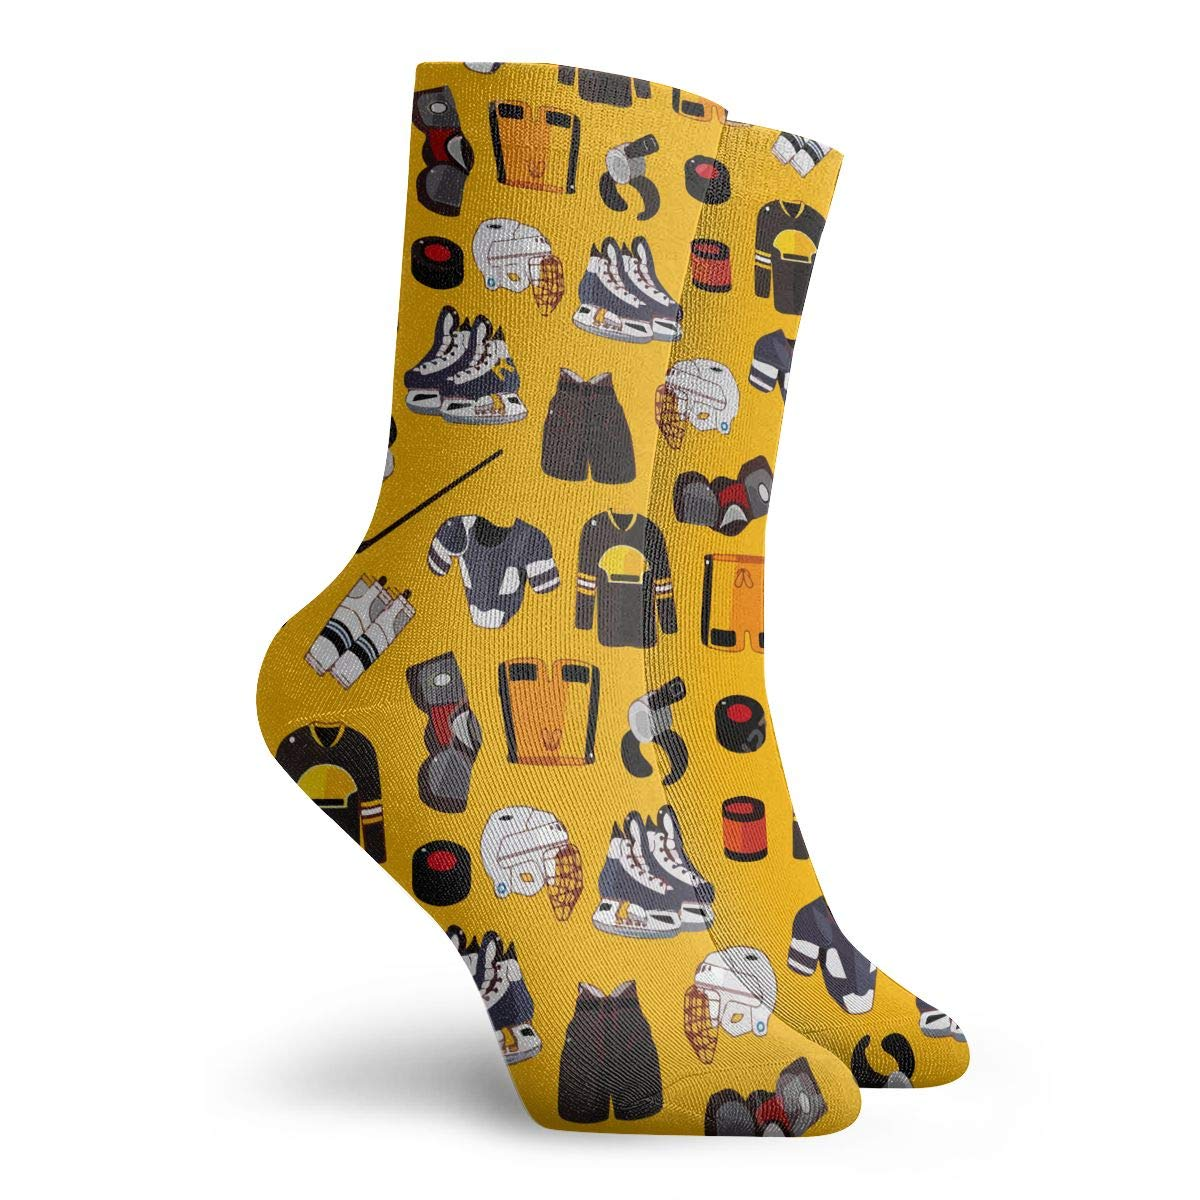 Sports Clothes Unisex Funny Casual Crew Socks Athletic Socks For Boys Girls Kids Teenagers